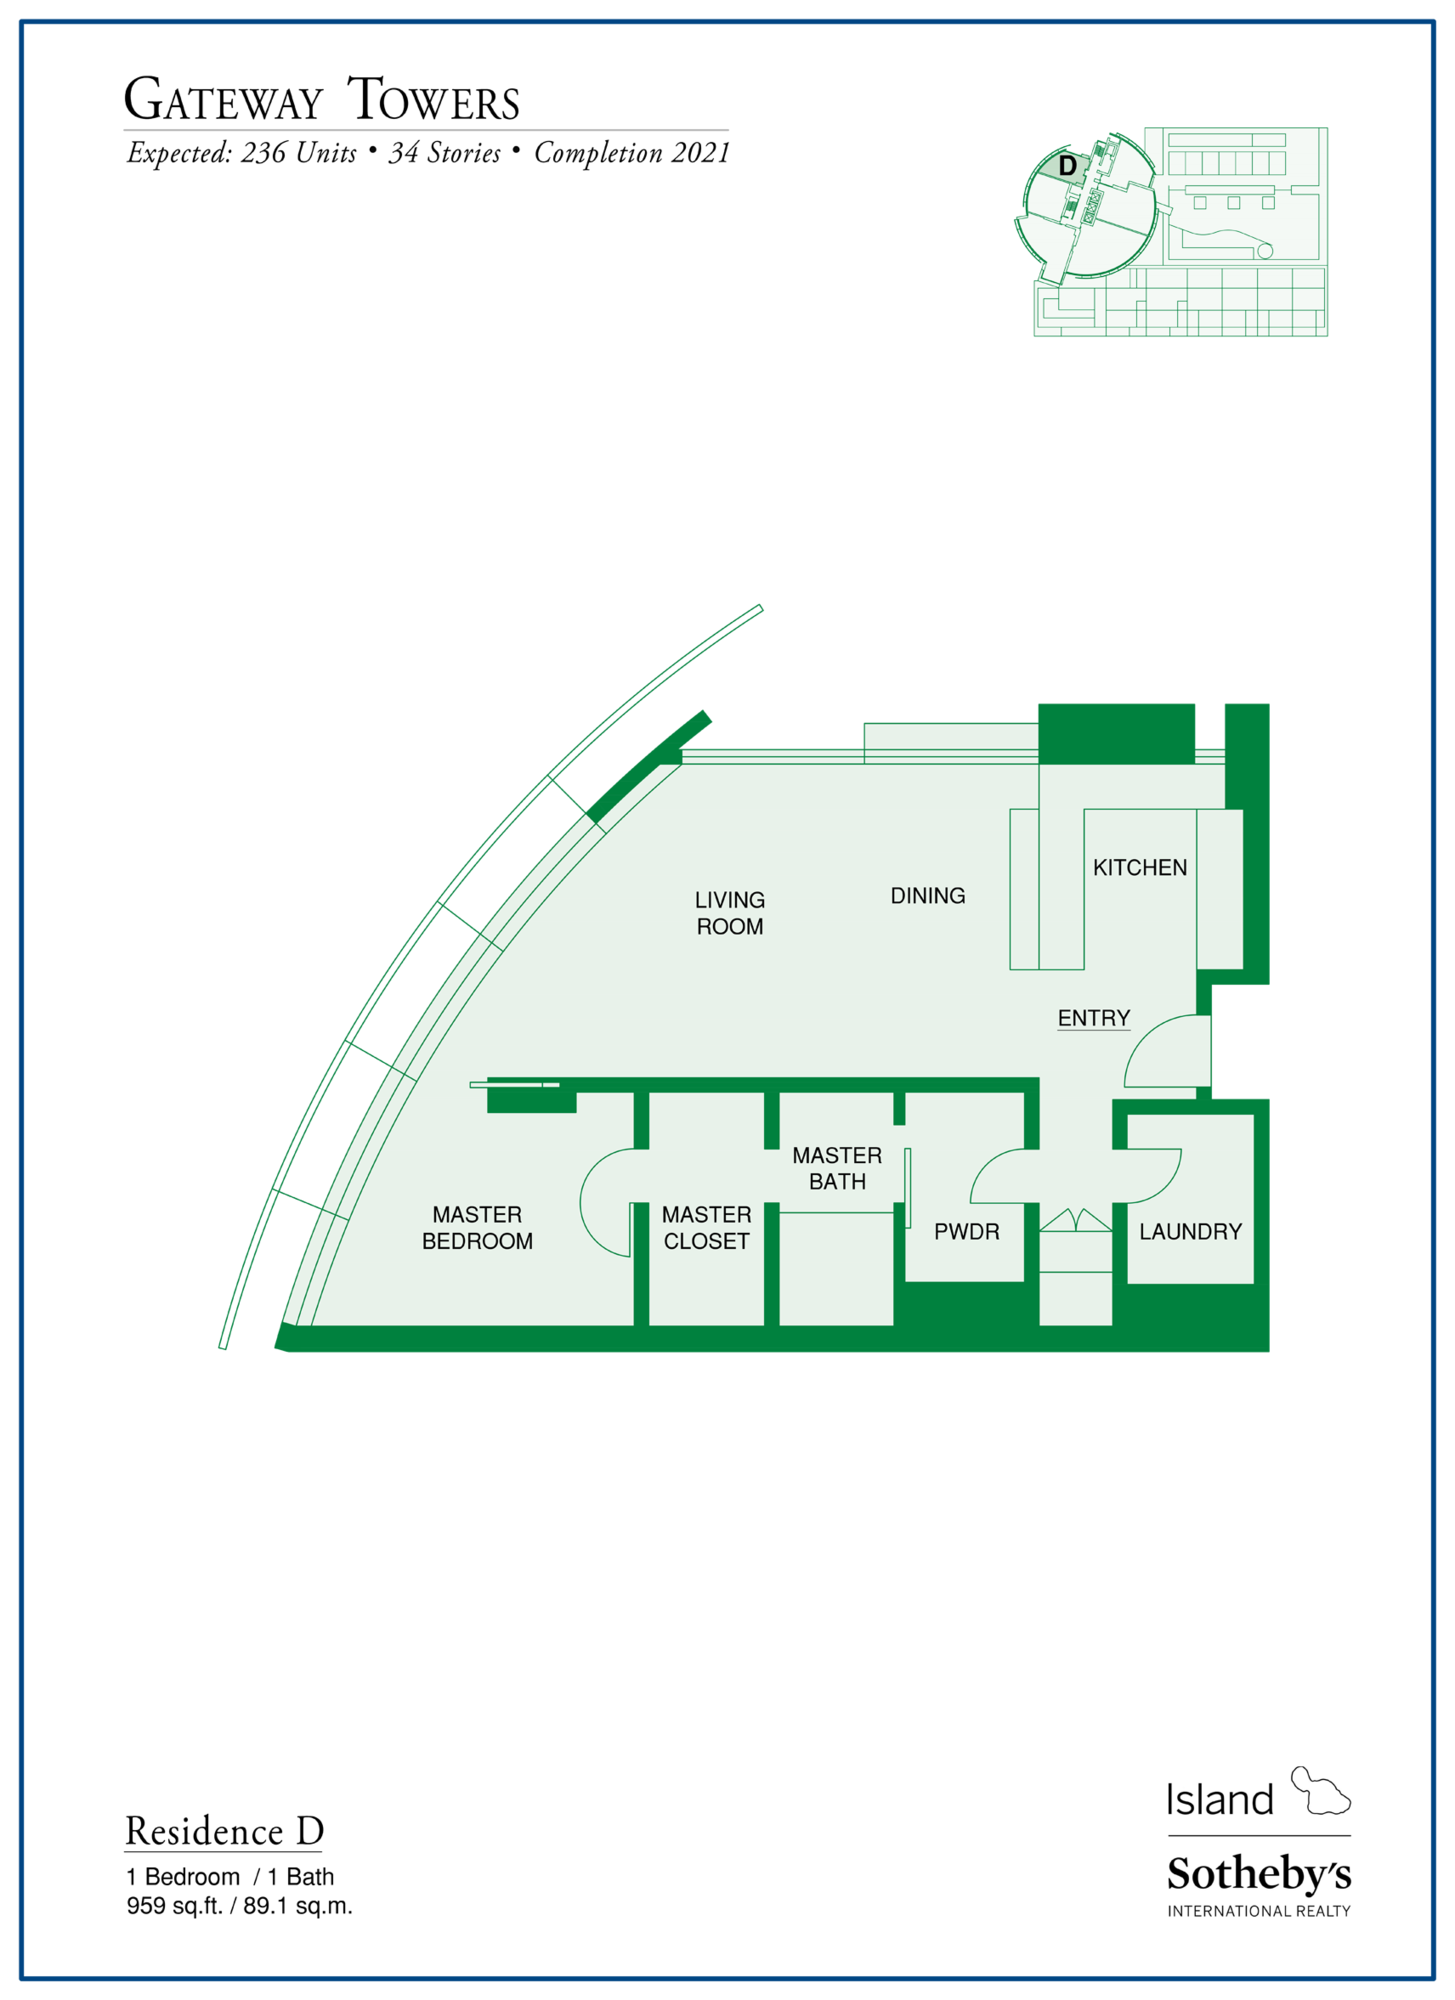 Gateway Towers Honolulu Floor Plan D Kakaako